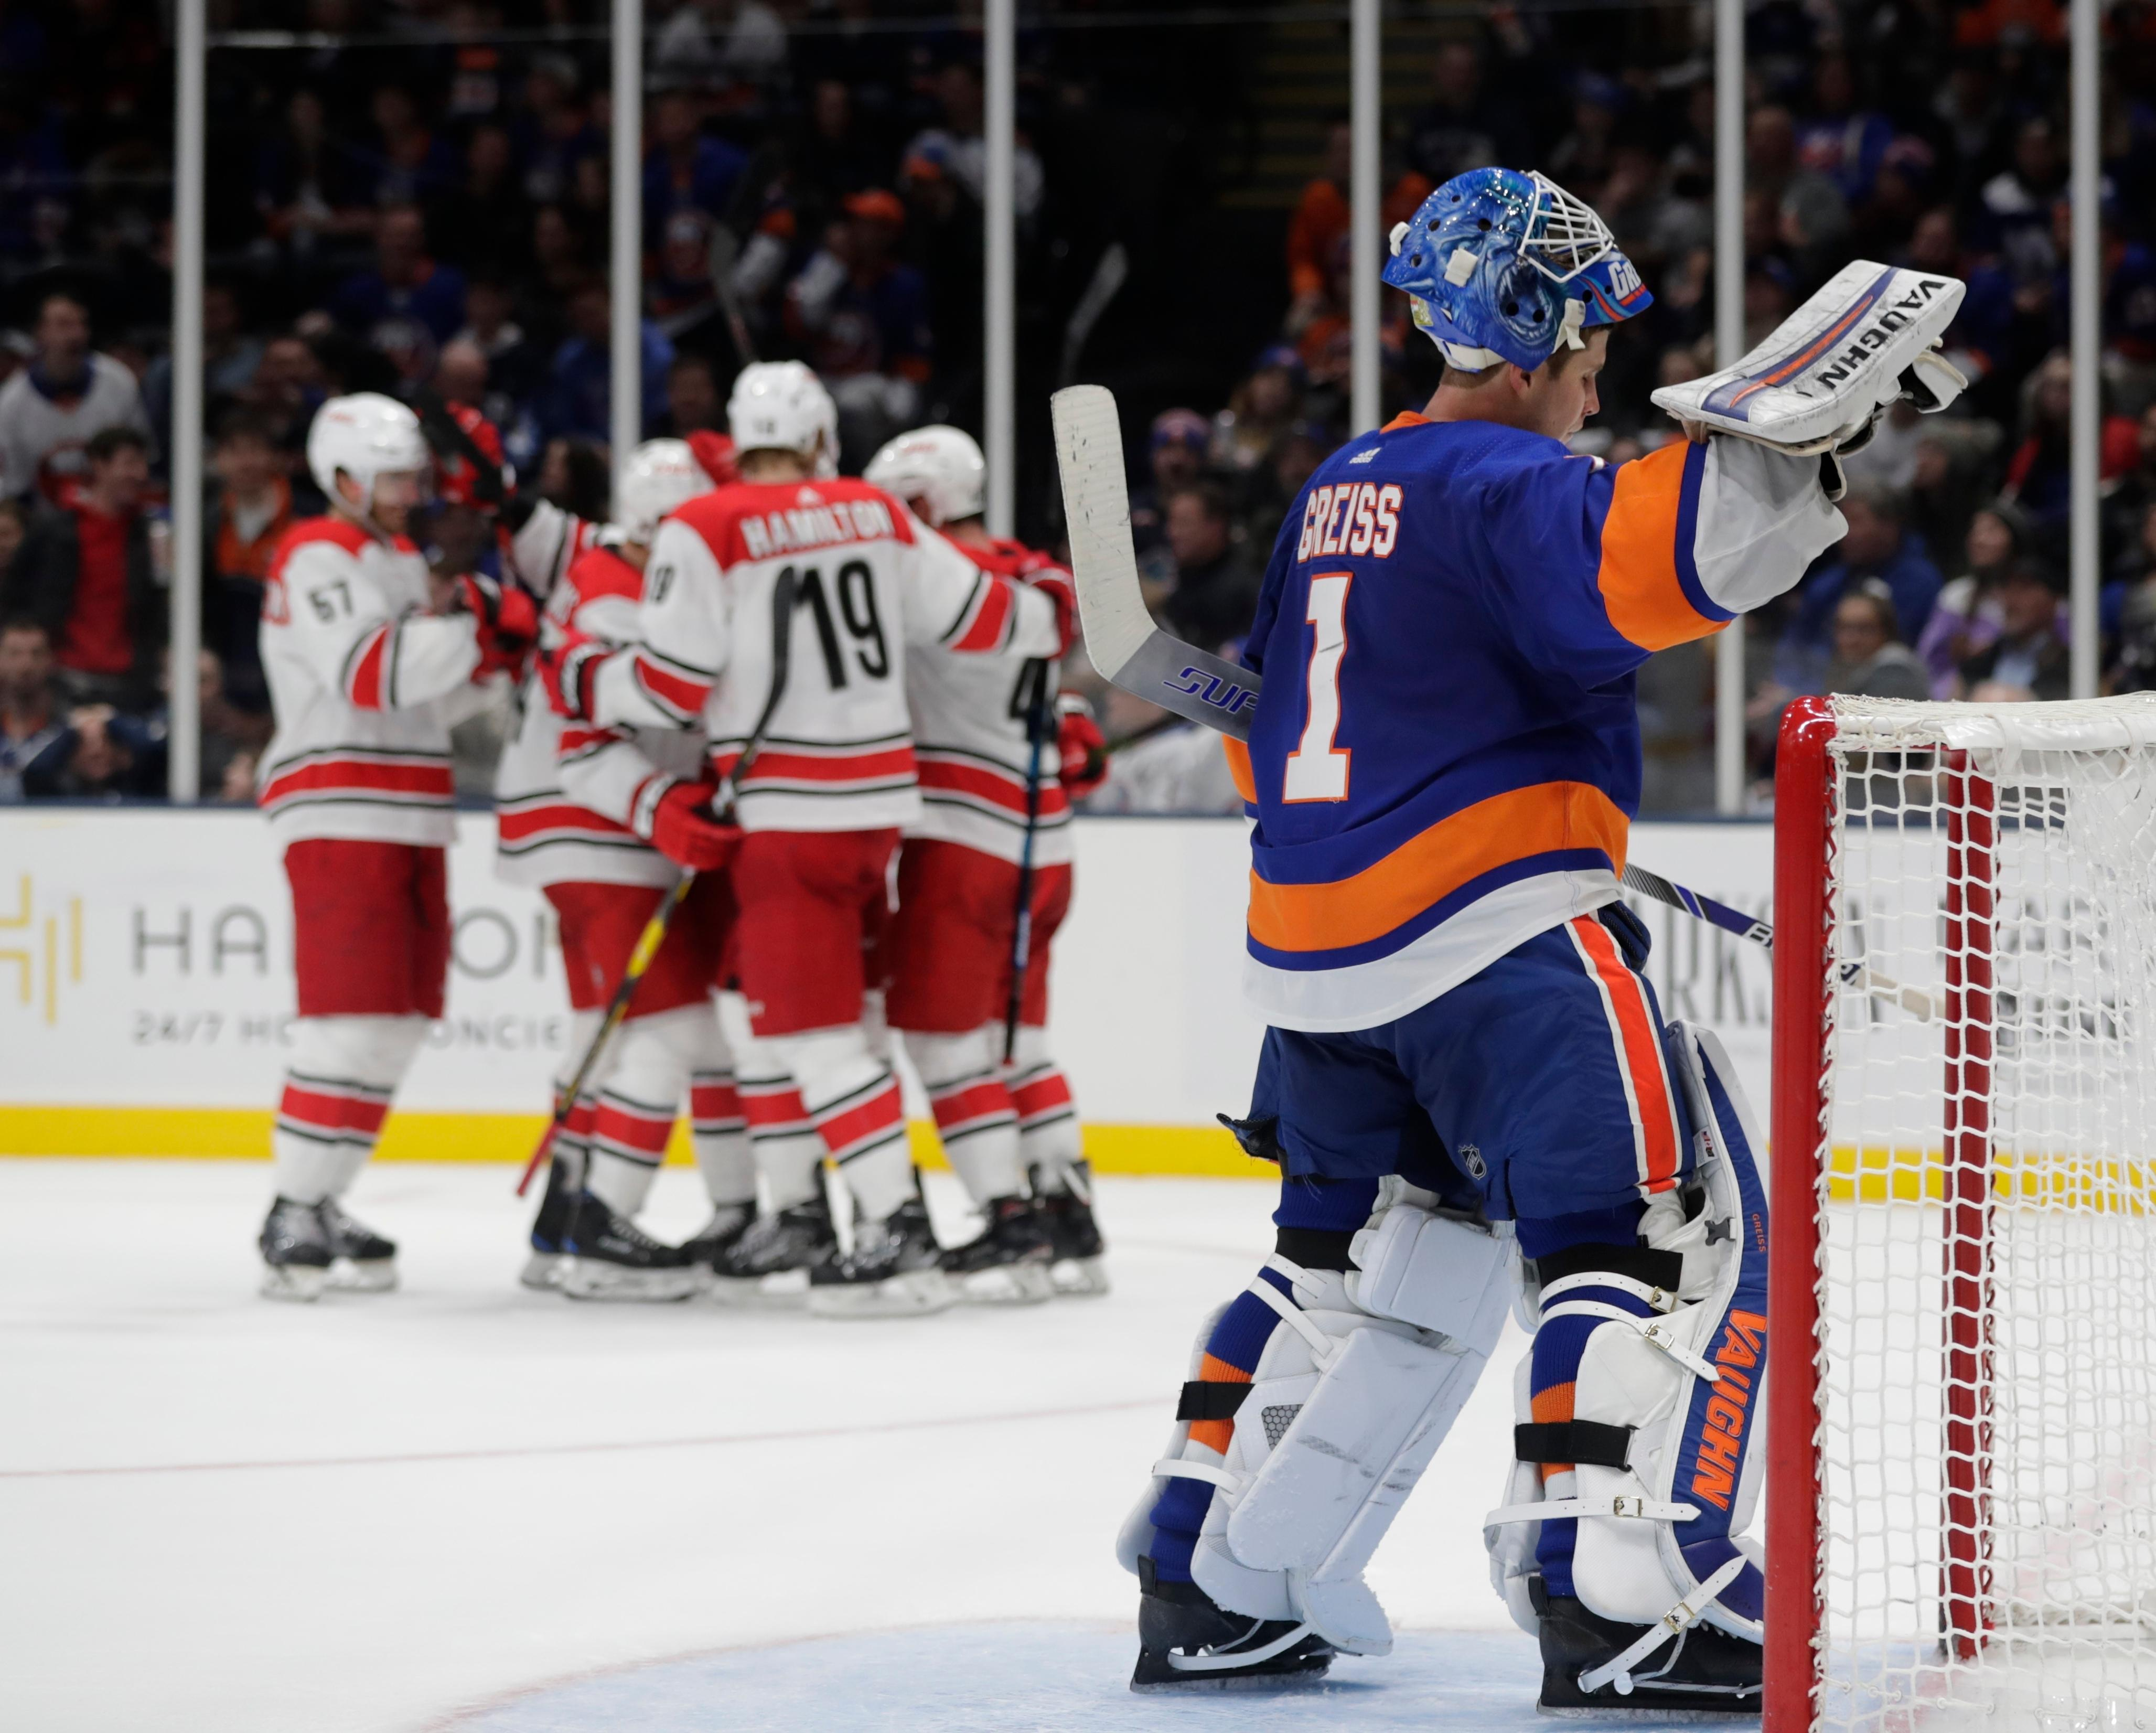 New York Islanders goaltender Thomas Greiss (1) reacts as the Carolina Hurricanes celebrate a goal by Justin Williams (14) during the third period of an NHL hockey game Tuesday, Jan. 8, 2019, in New York. The Hurricanes won 4-3. (AP Photo/Frank Franklin II)